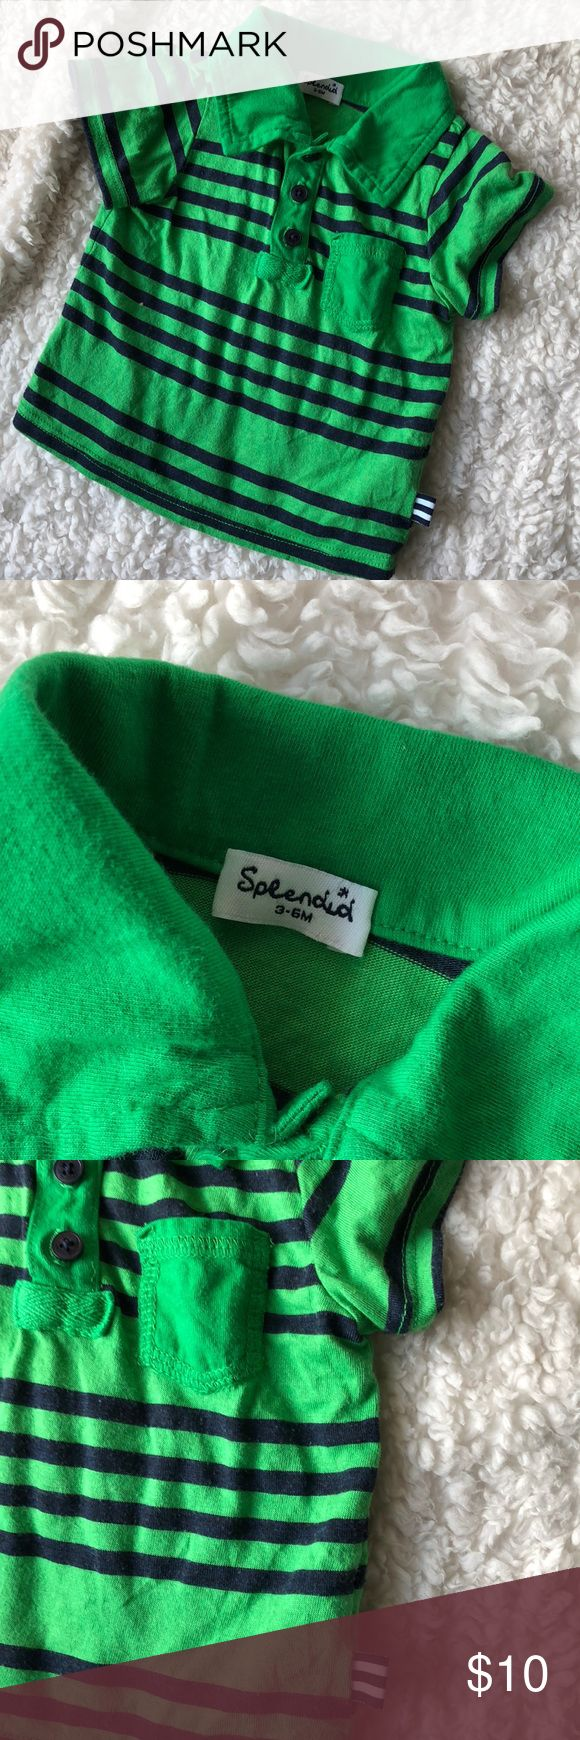 Splendid baby polo. Size 3-6 mo Green and navy polo. Soft light knit material. In good used condition. Some overall natural wear to the fabric, but no holes or stains. Splendid Shirts & Tops Polos